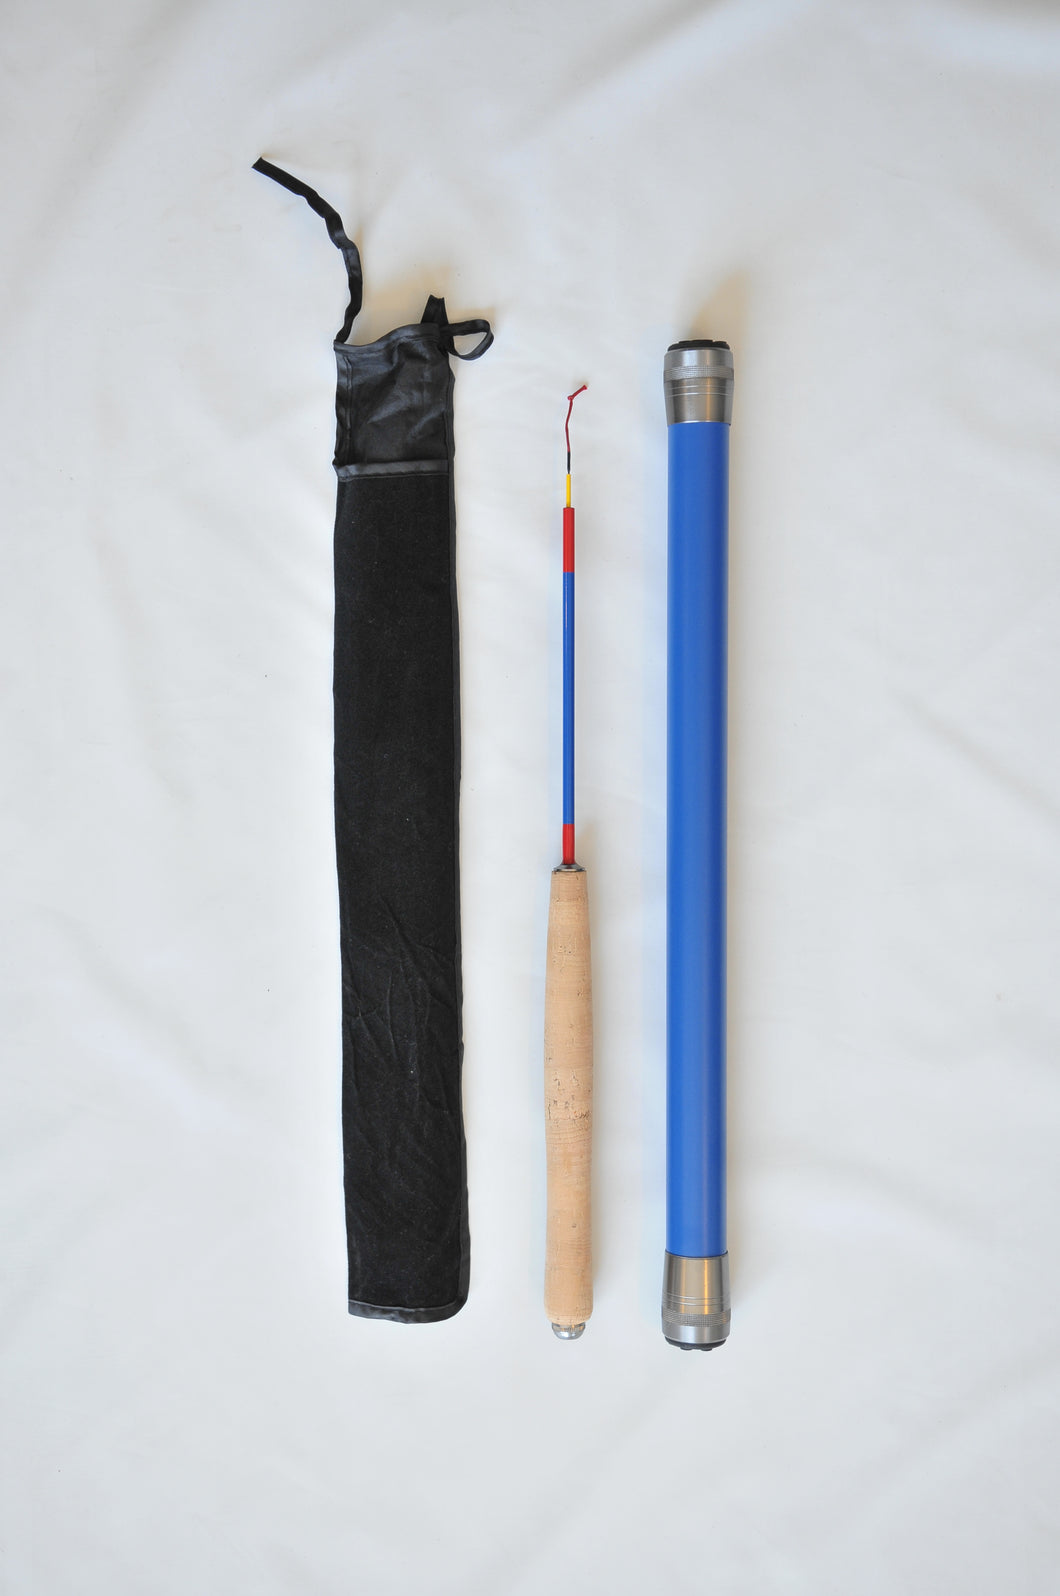 4' Tenkara Kids Hobo Rod with Storage Tube